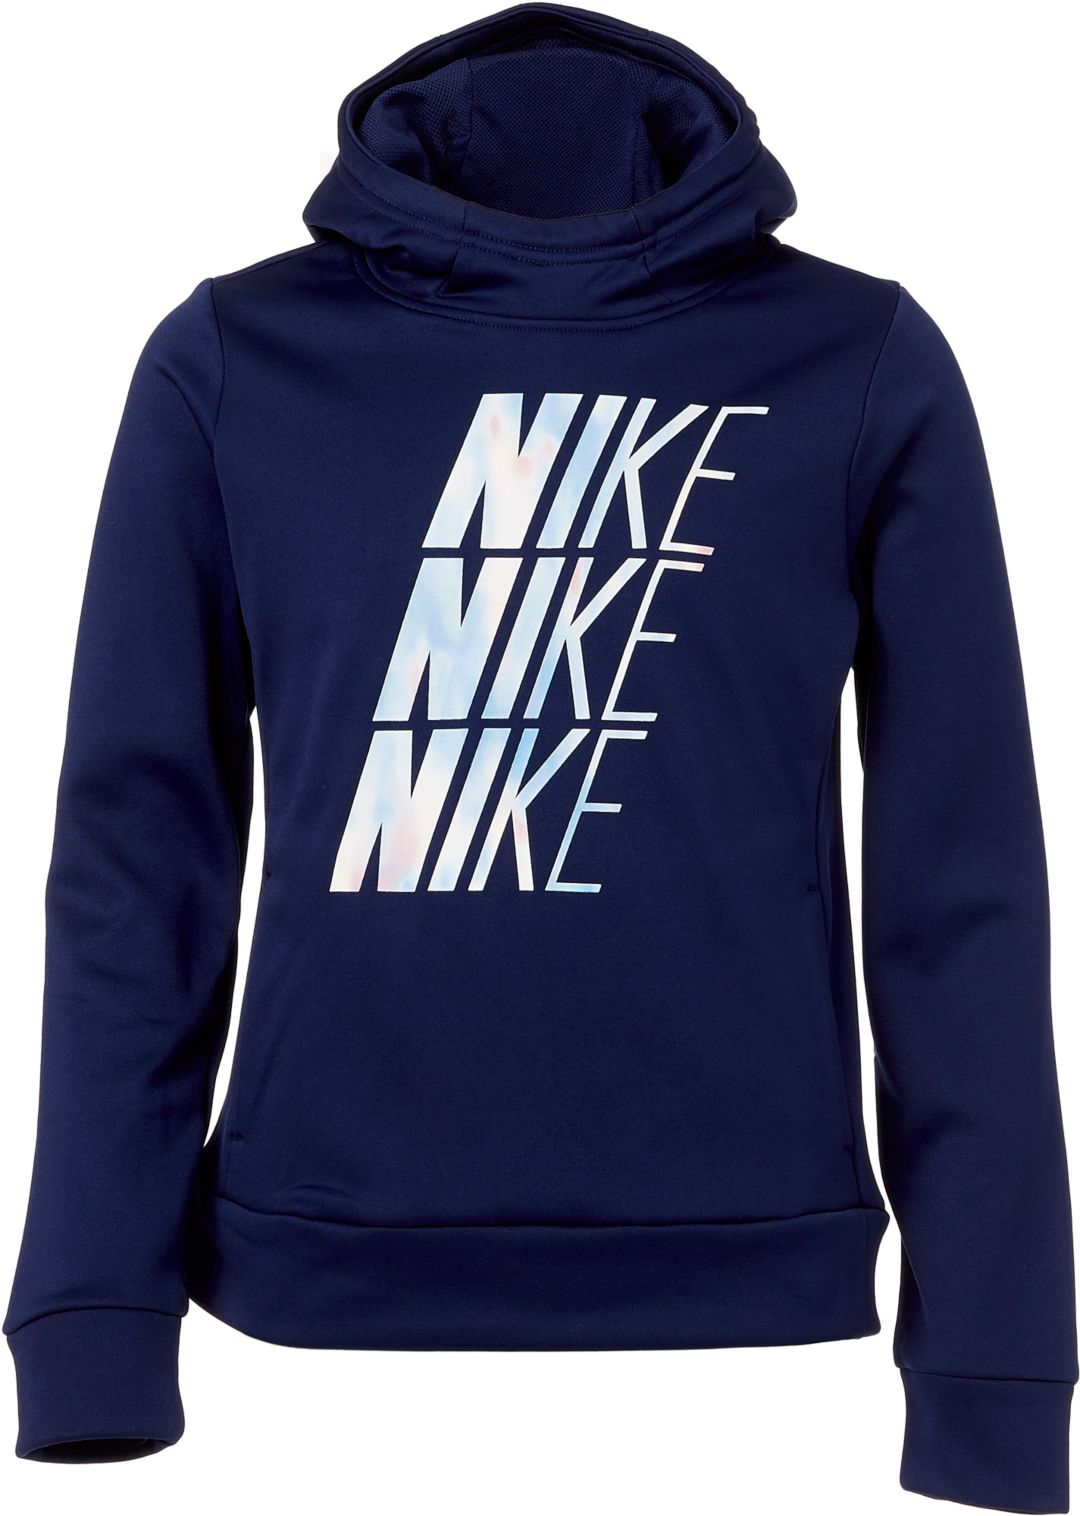 a7d85c57 Nike Girls' Therma Unicorn Hooded Pullover   DICK'S Sporting Goods